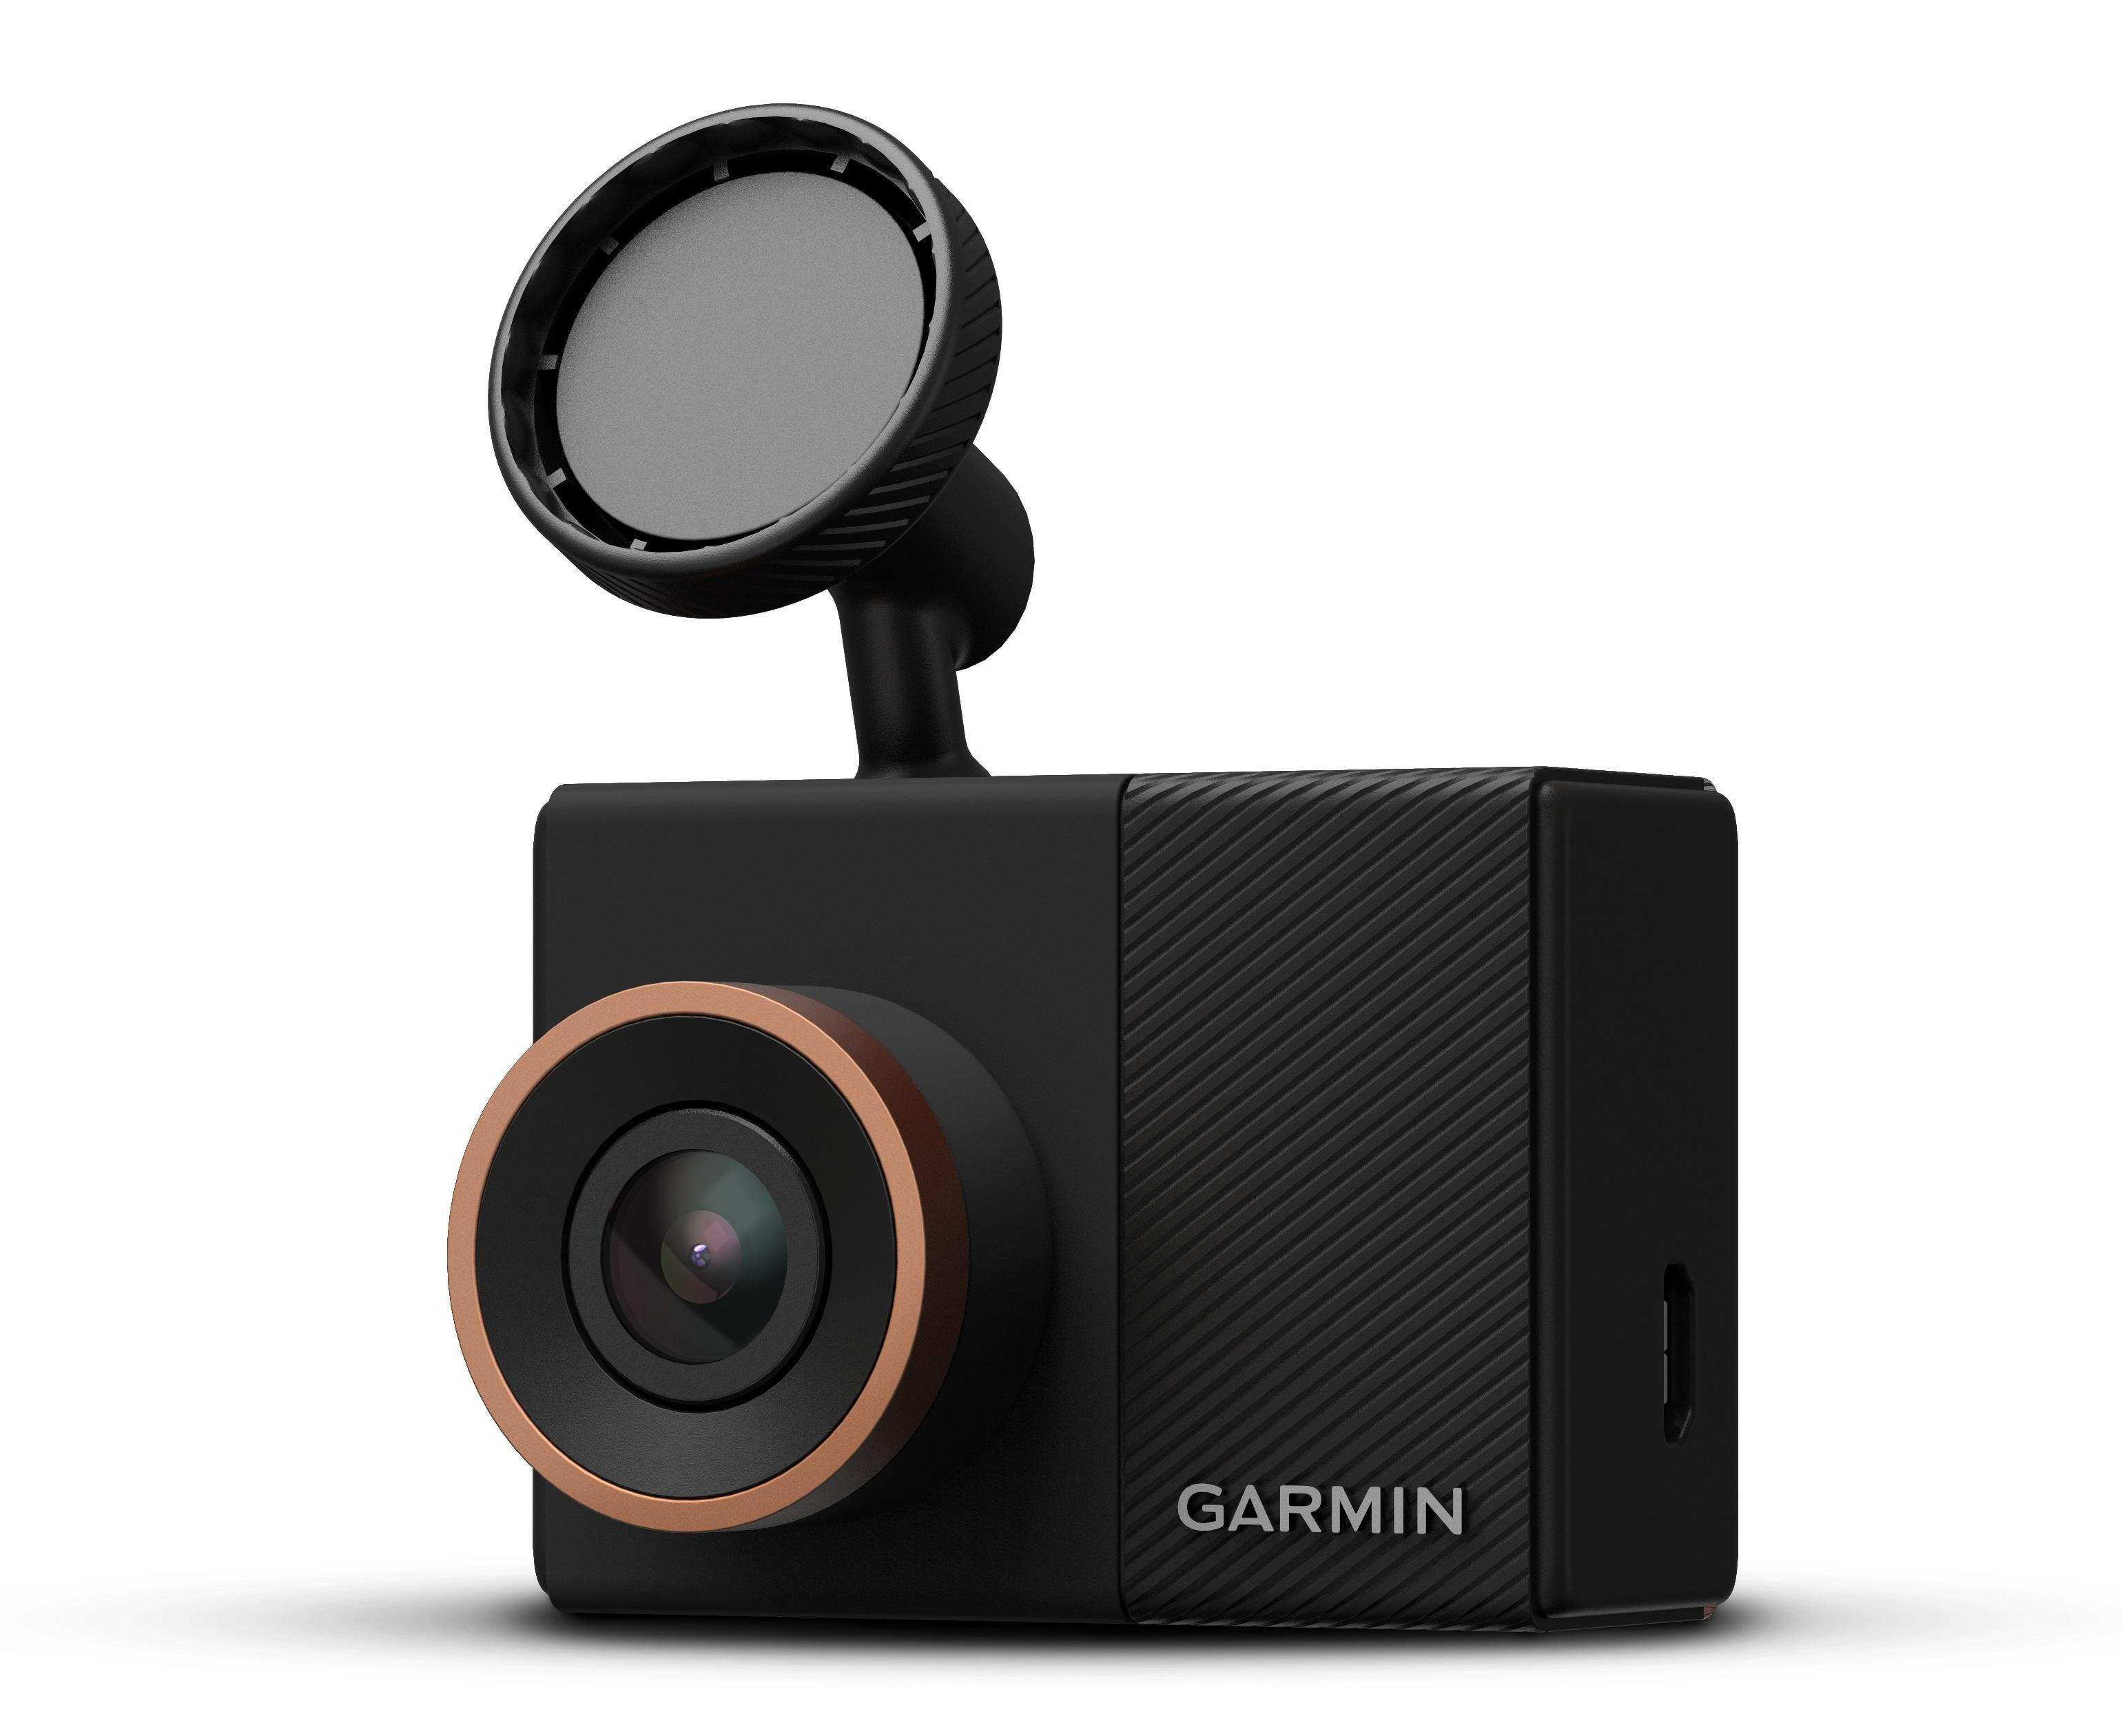 79a1446e 66de 496f 9d21 e383b0933ea8._SR285285_ amazon com garmin dash cam 55 cell phones & accessories  at mifinder.co